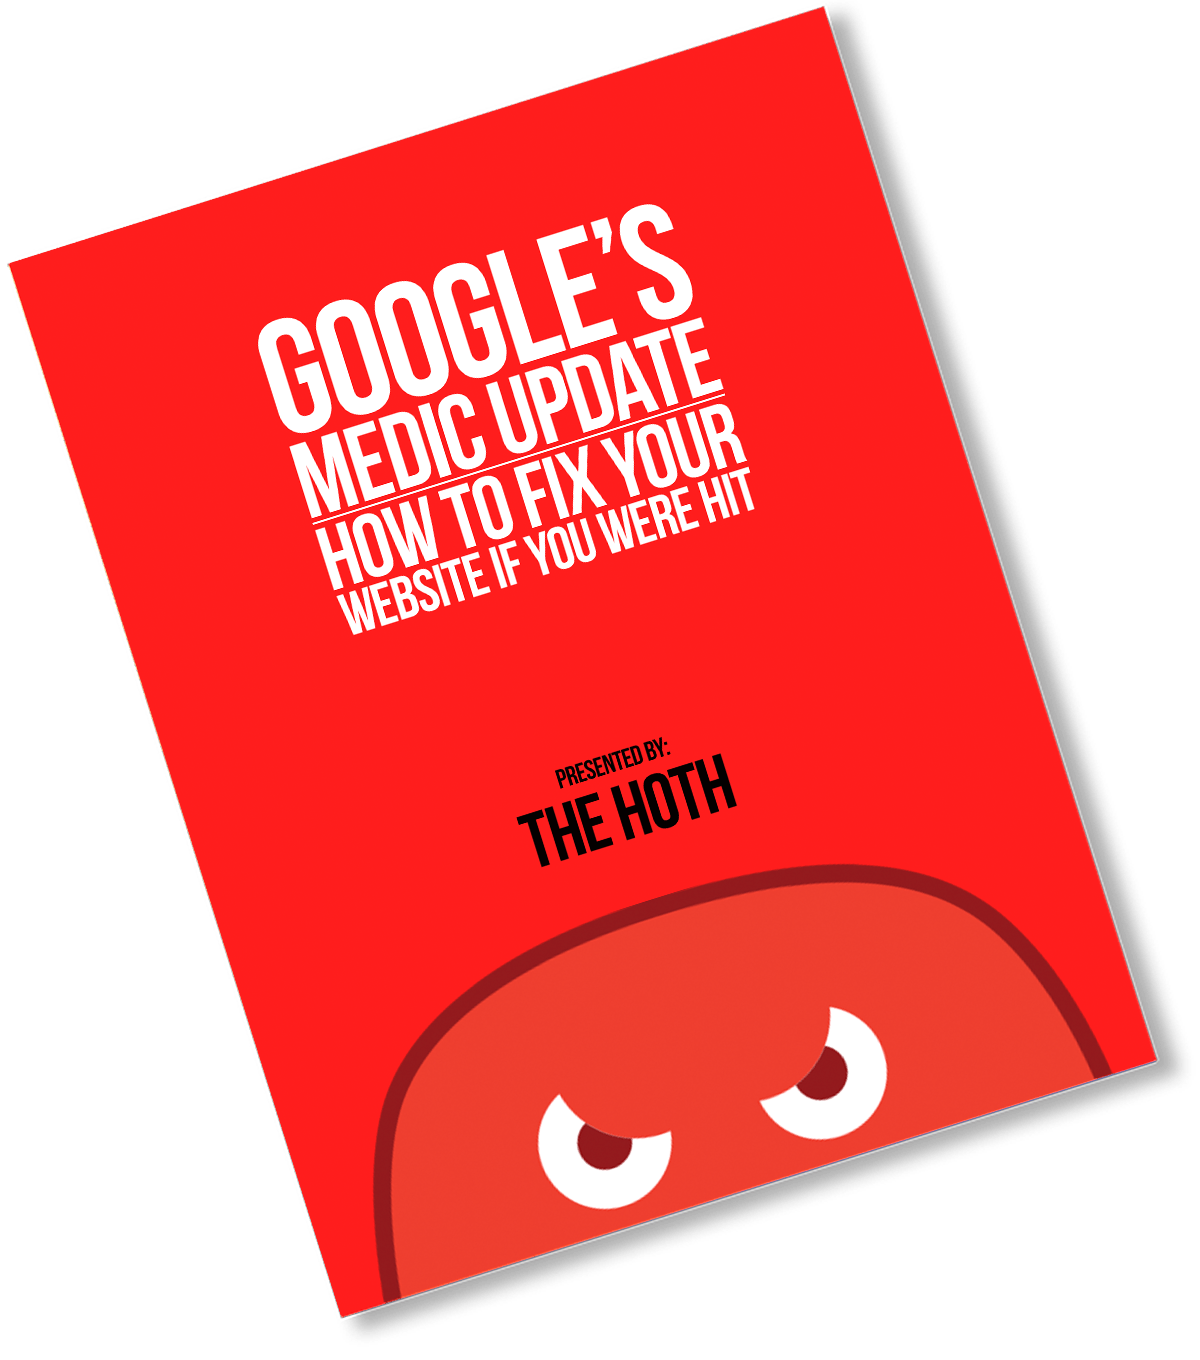 Google Medic Update Guide